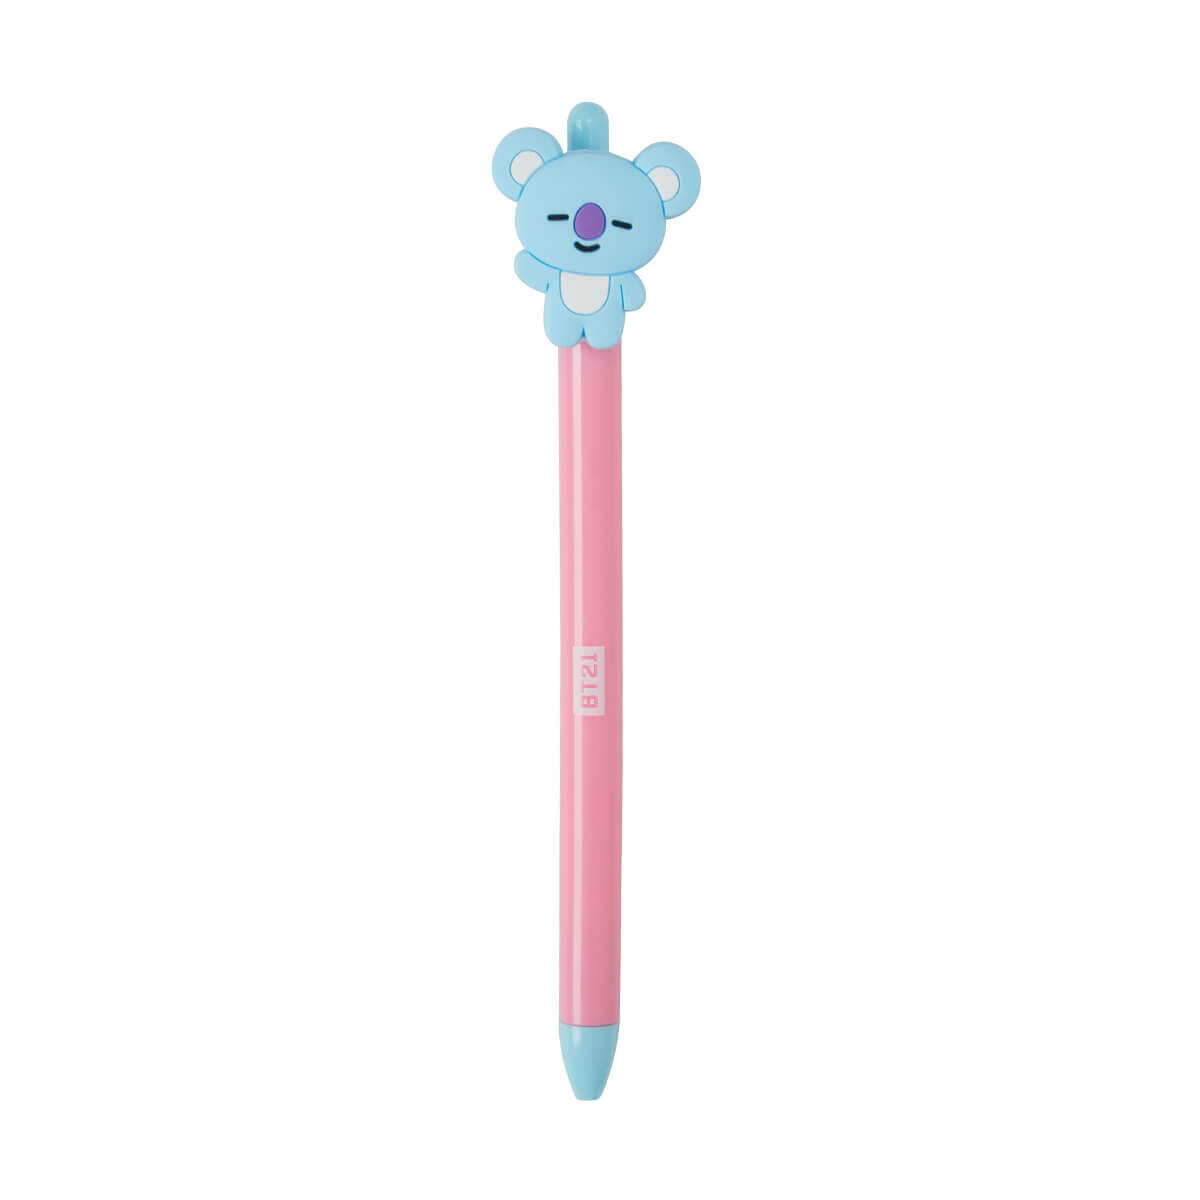 BT21 KOYA HEART Gel Pen